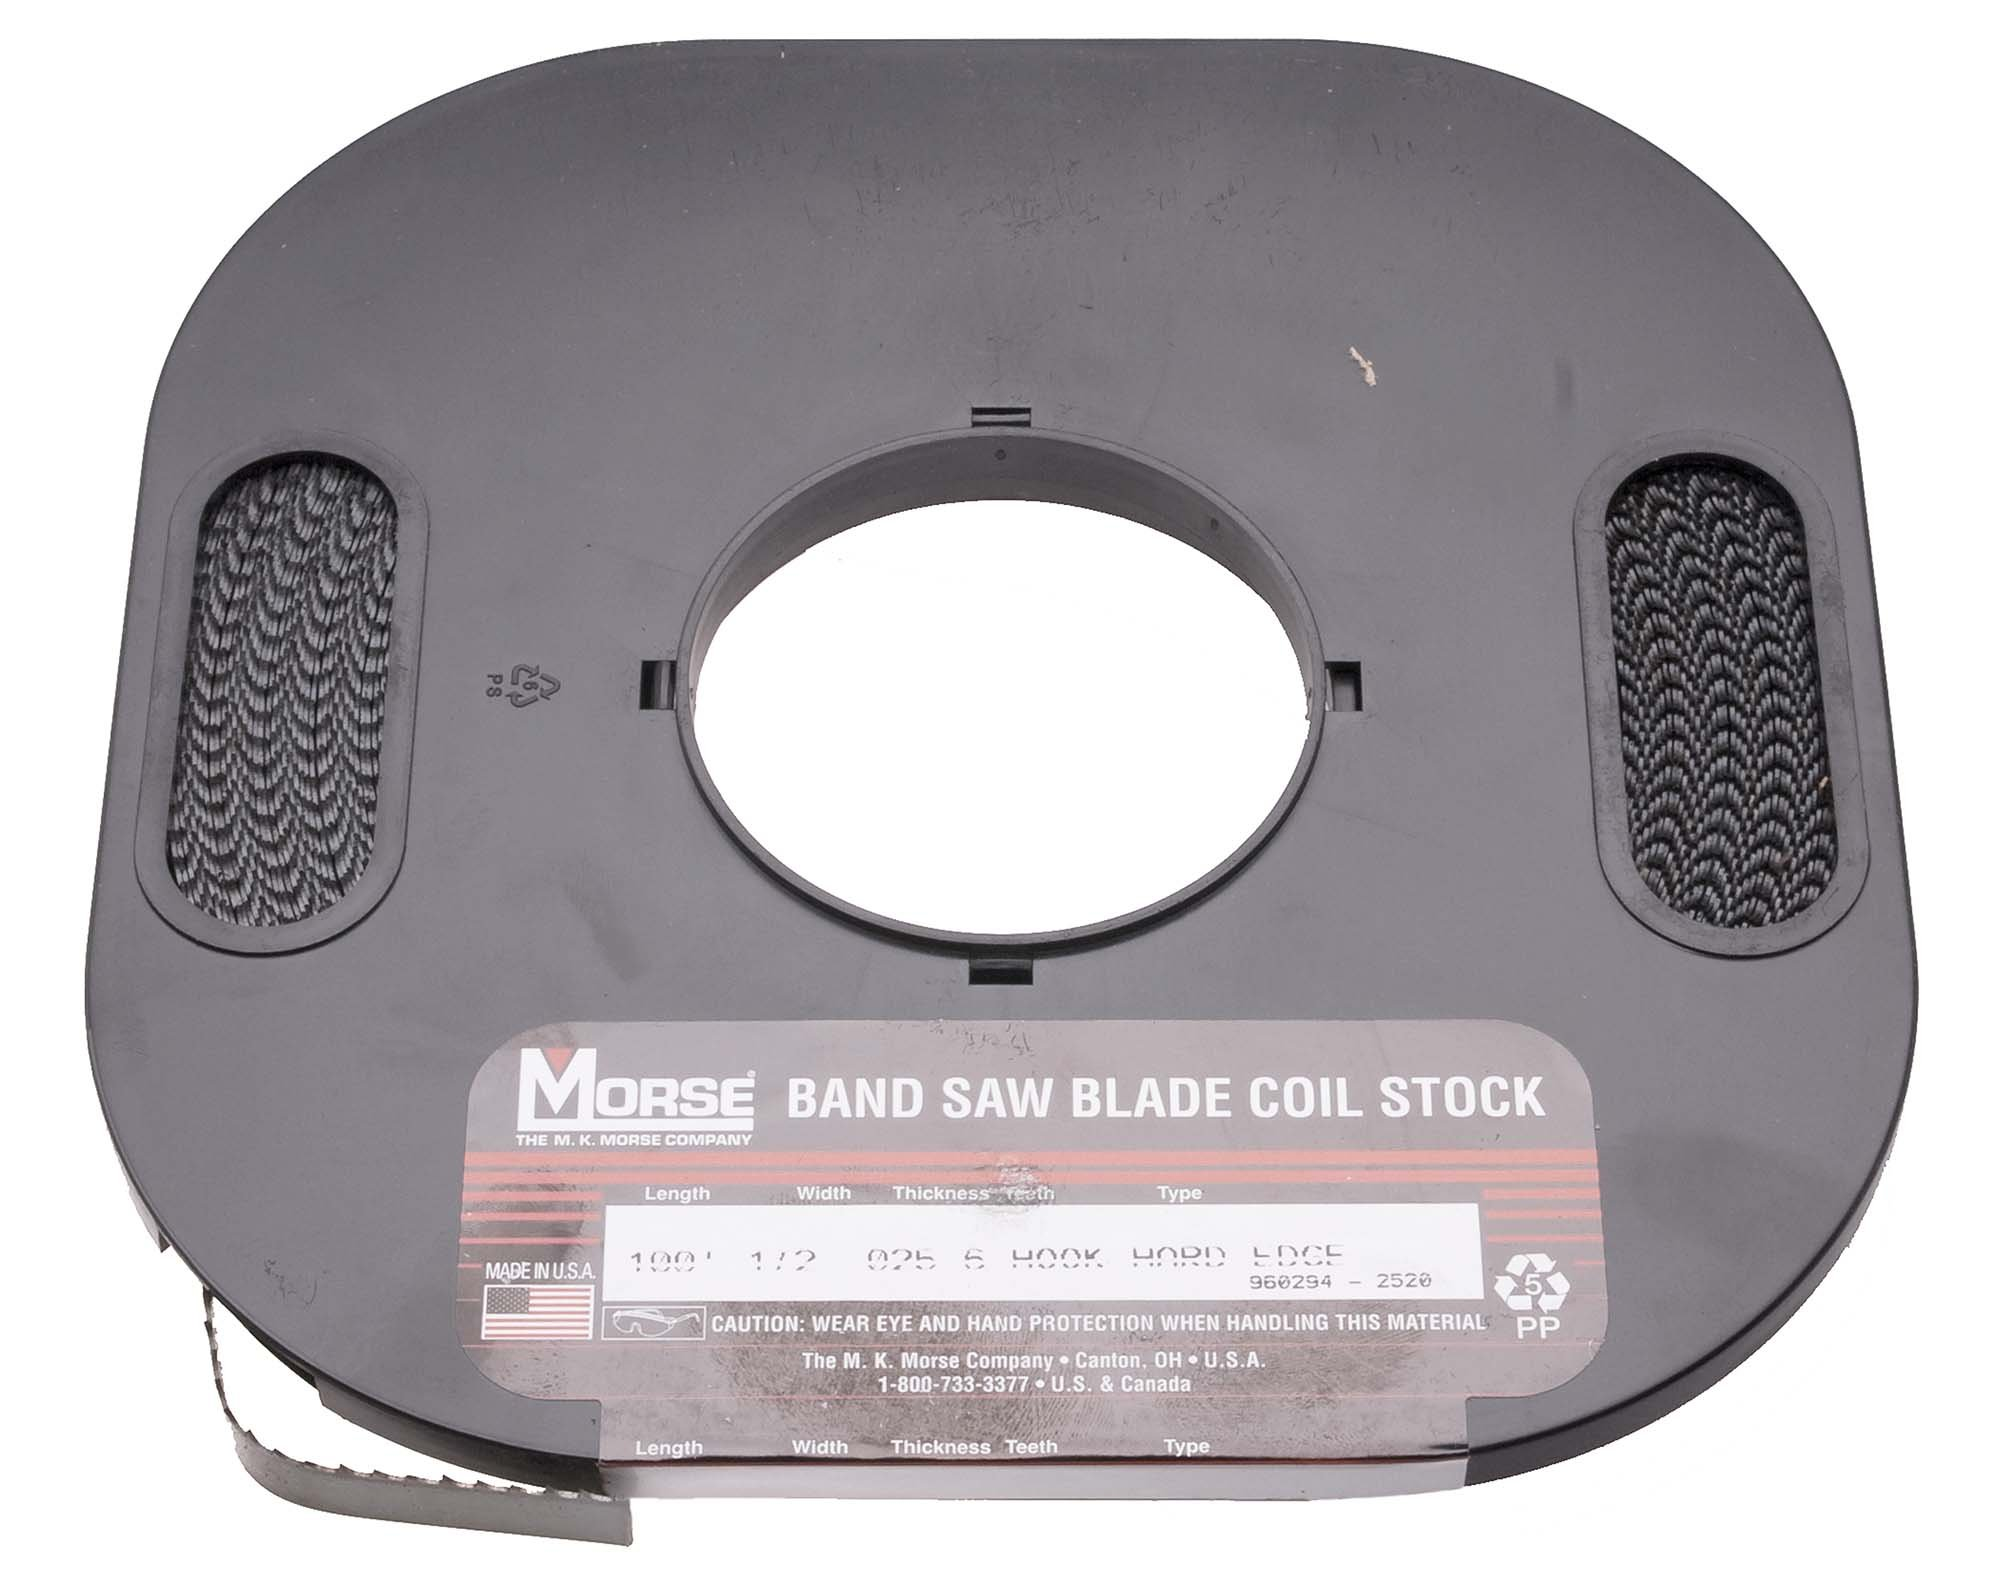 M K Morse 3/8-4 Hook 100 foot Roll USA Carbon Steel, Hard Edge, Flex Back Bandsaw Blade by M.K. Morse